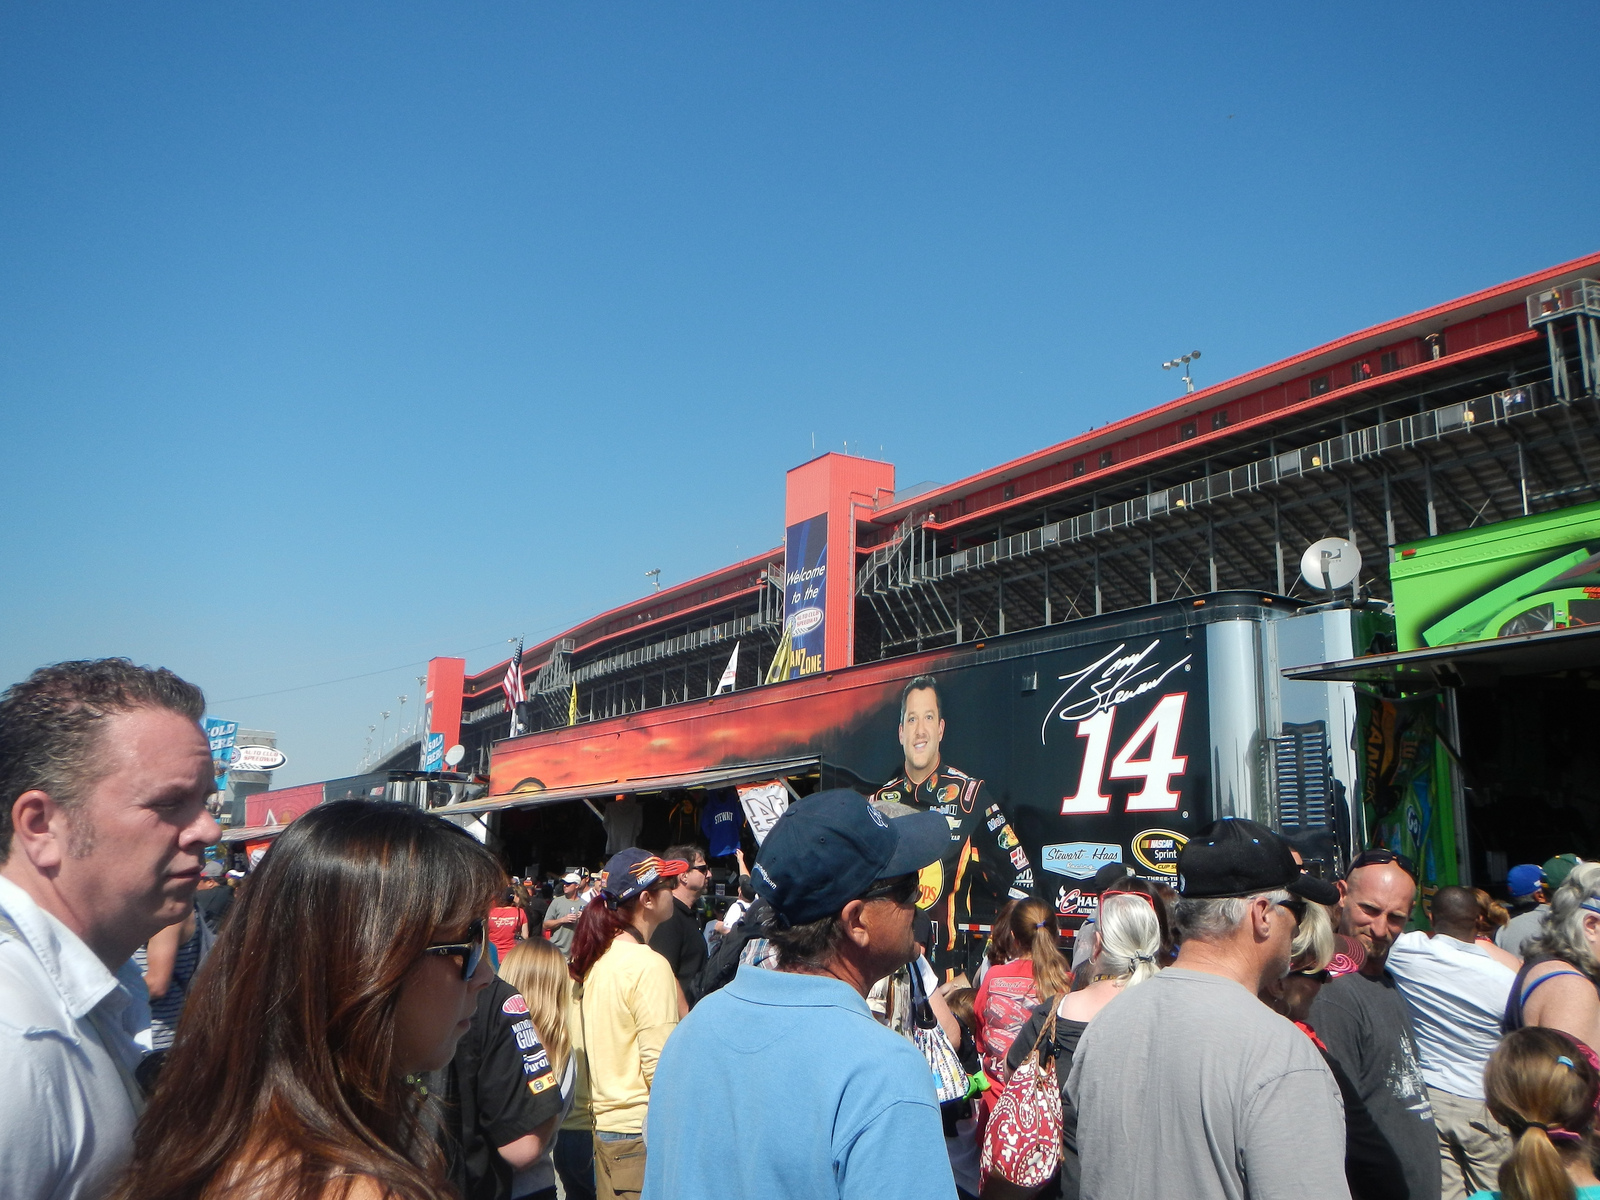 The Danica Patrick merch booth was by far the most crowded.